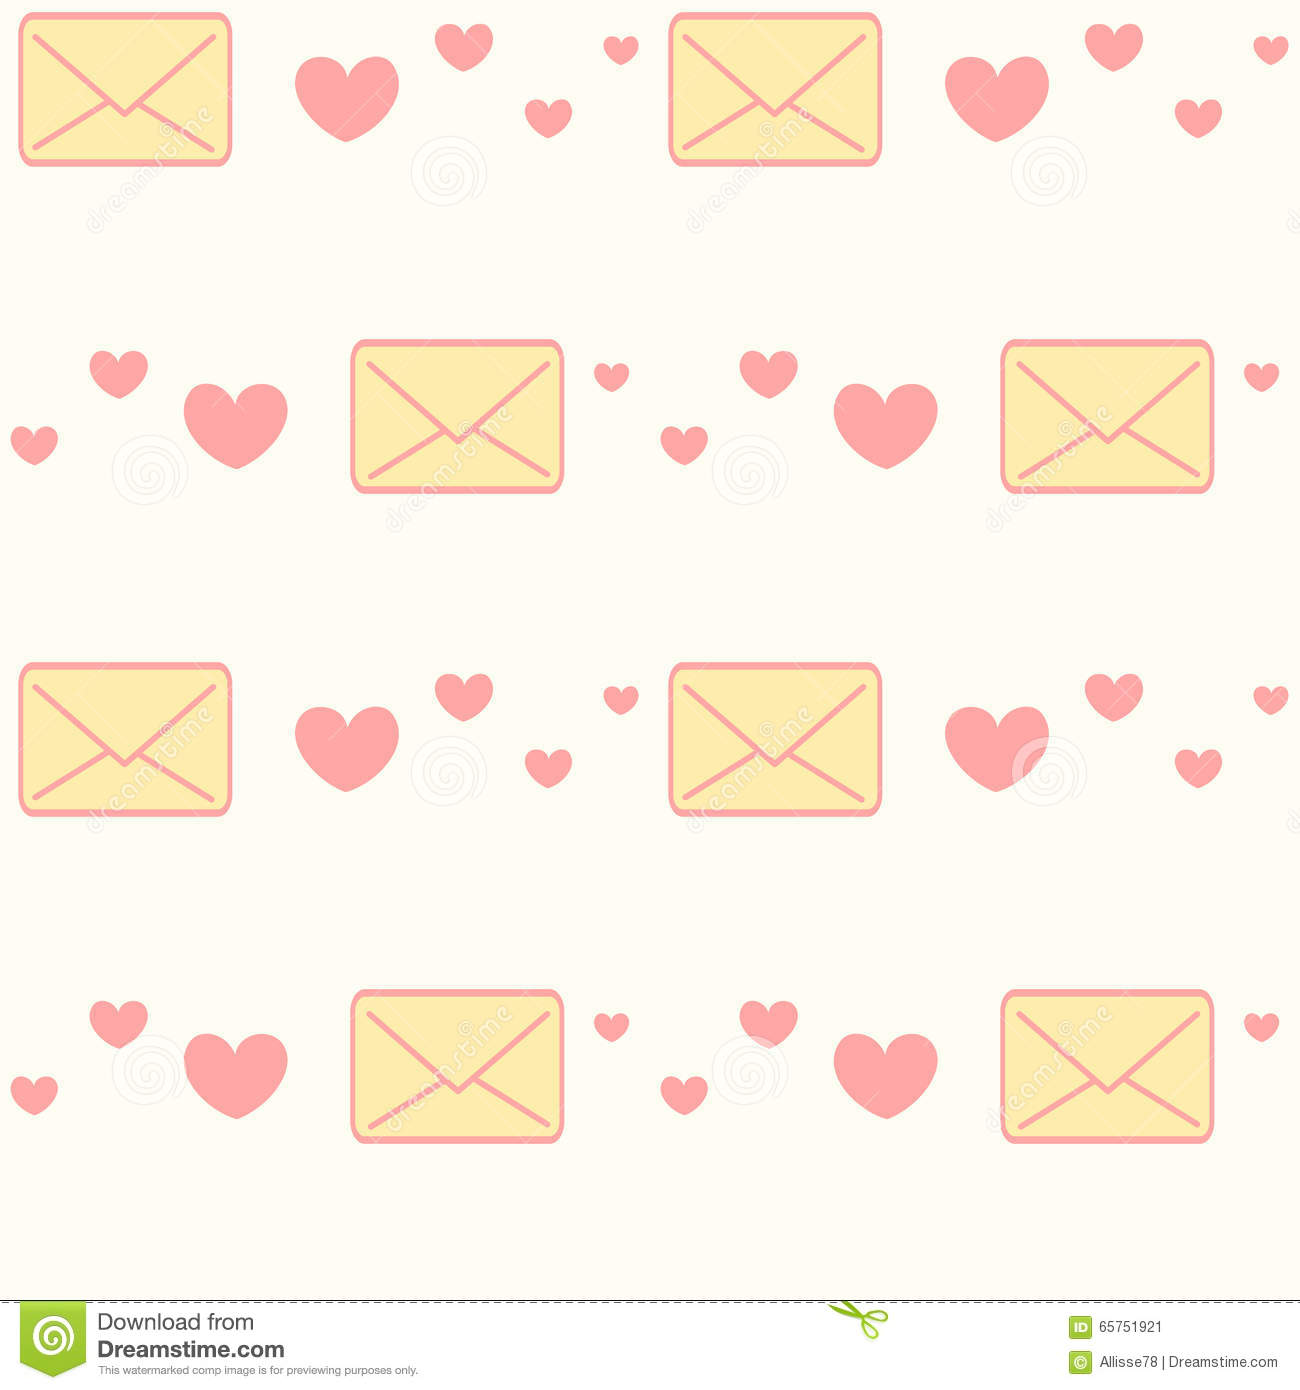 Love Letter And Hearts Seamless Pattern Background cartoon Vector cartoonDealer.com #30330601